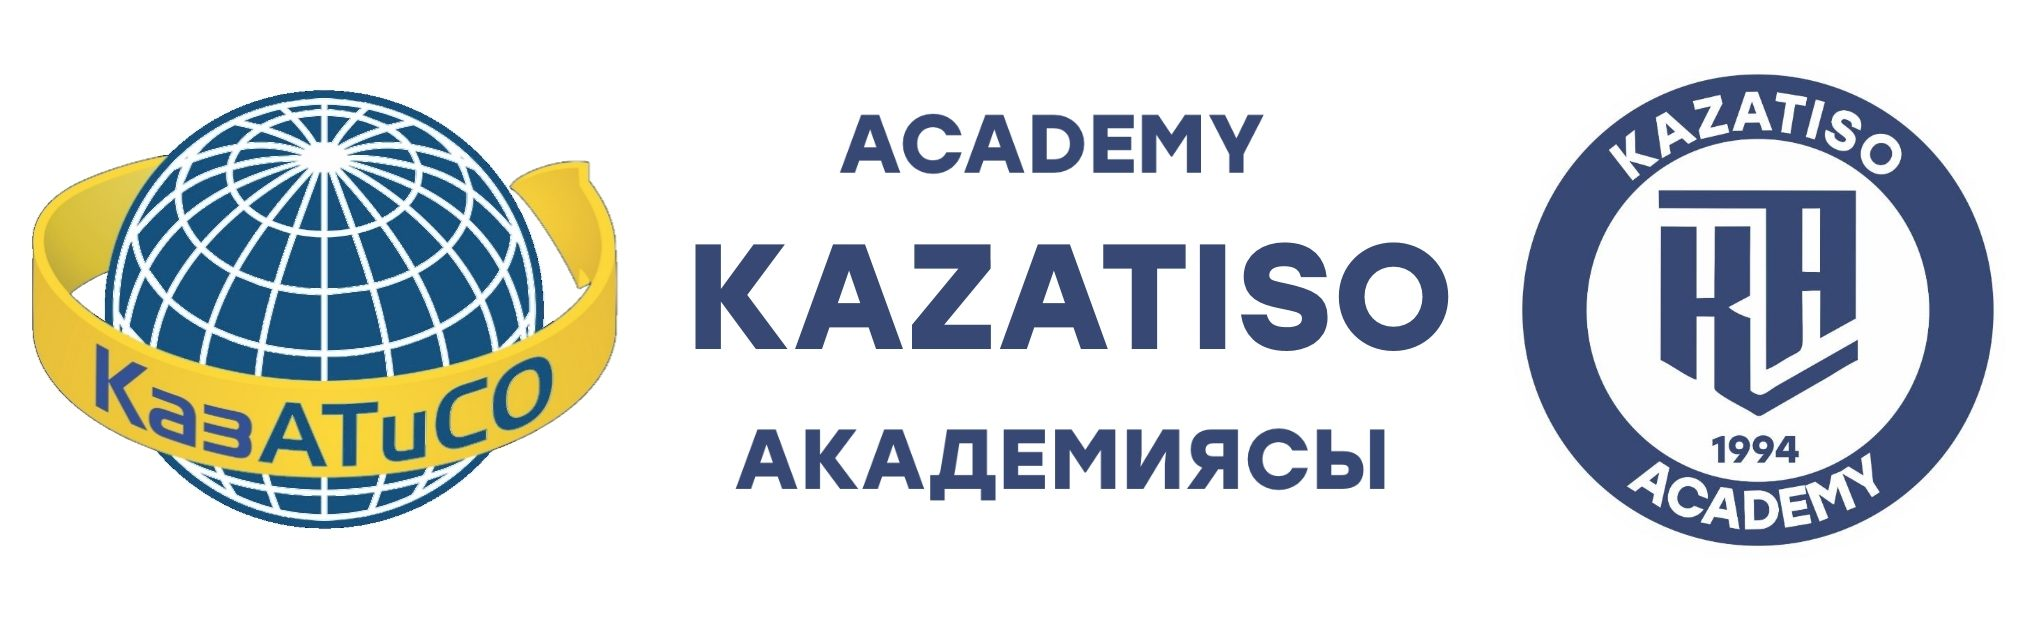 logo-old-and-new-banner